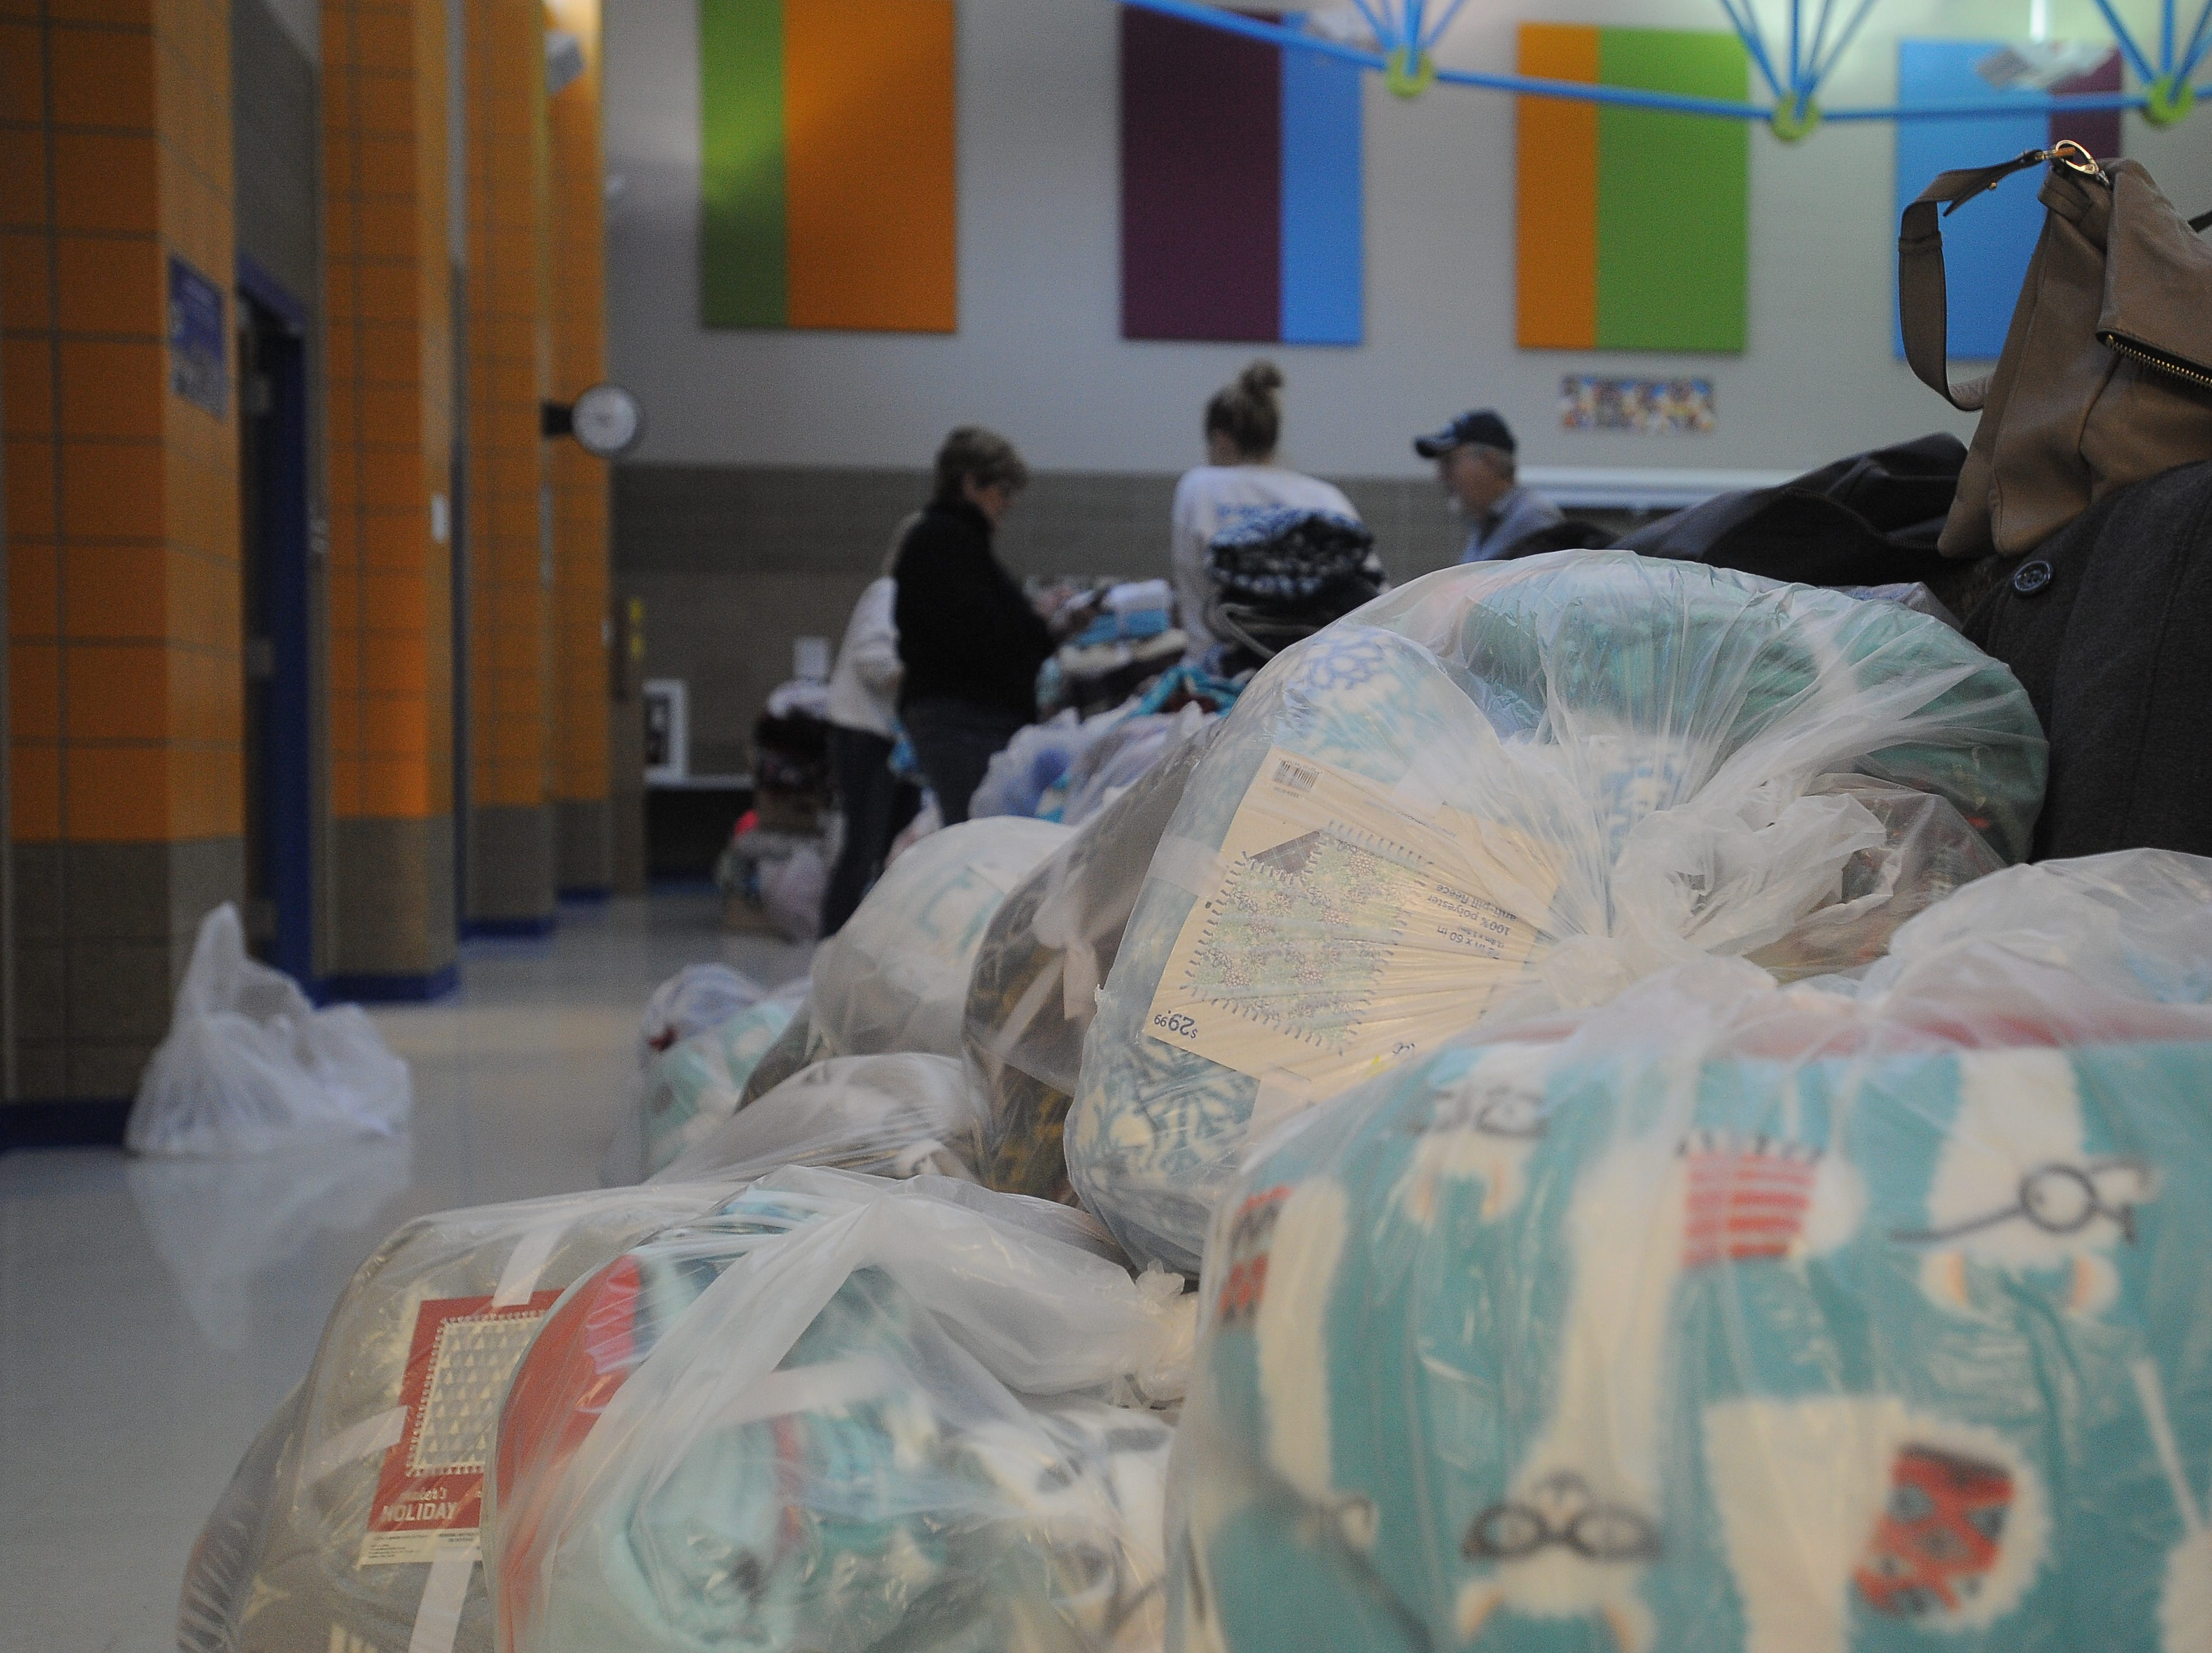 Project Warm-Up volunteers sort donated fabrics to make blankets for area children. Hundreds from the Sioux Falls area gathered Saturday, Dec. 8, 2018 at Sonia Sotomayor Elementary to help make blankets.